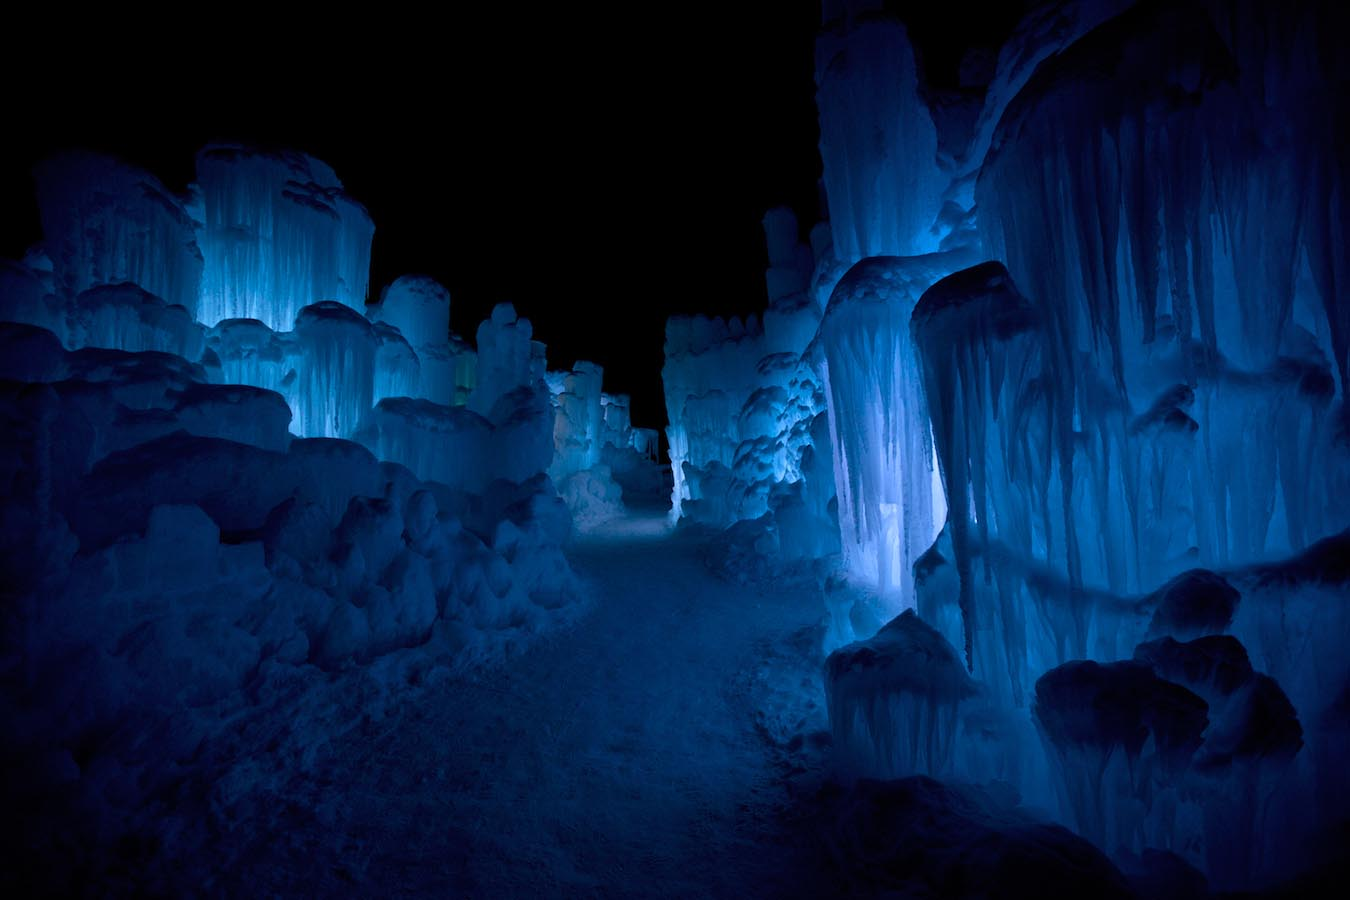 The Ice Castle in Lincoln, New Hampshire at night. Photo by Corey Schestak.